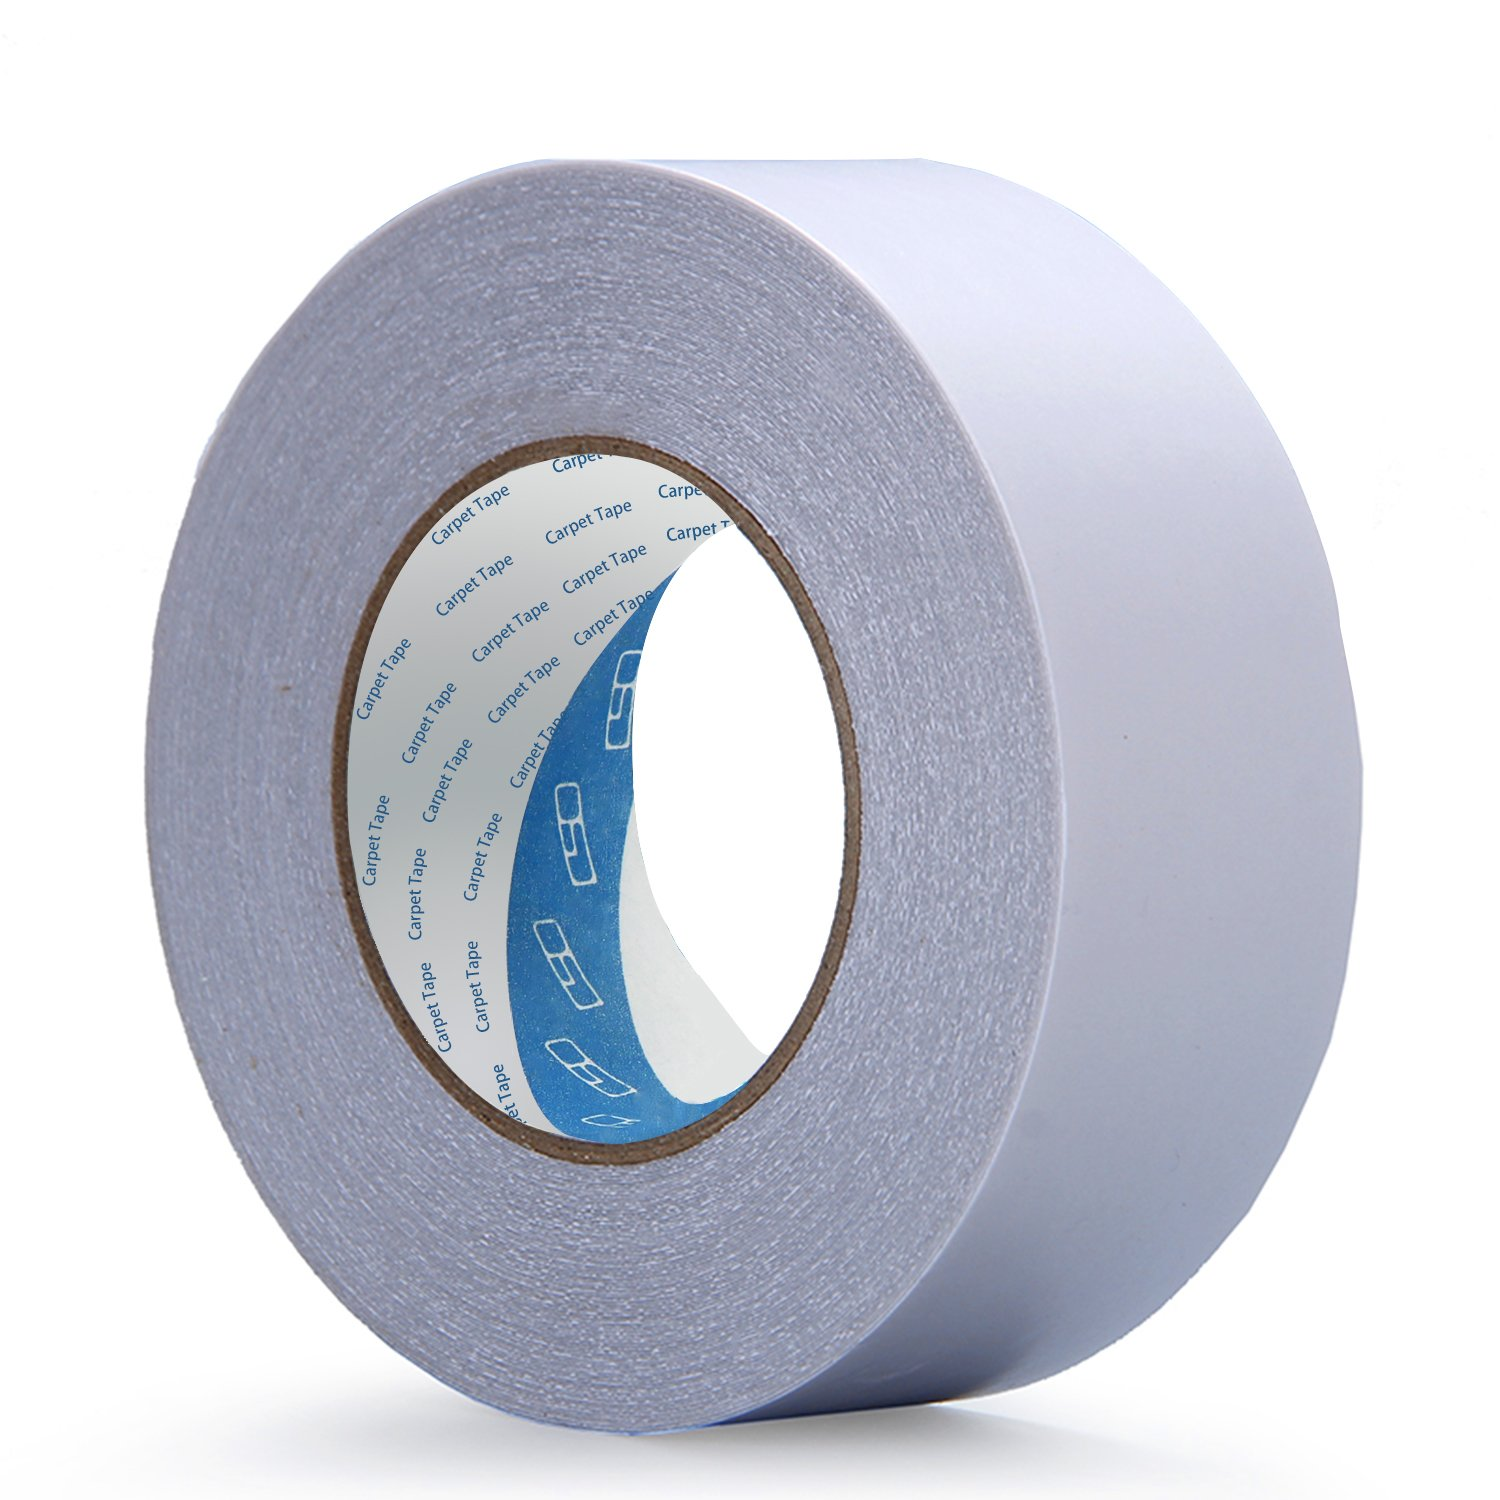 carpet edging tape. double sided adhesive carpet tape by dighealth(tm)-(2 inches x 30 yards, heavy duty, for indoor outdoor edge binding, no residue), removable carpet, edging